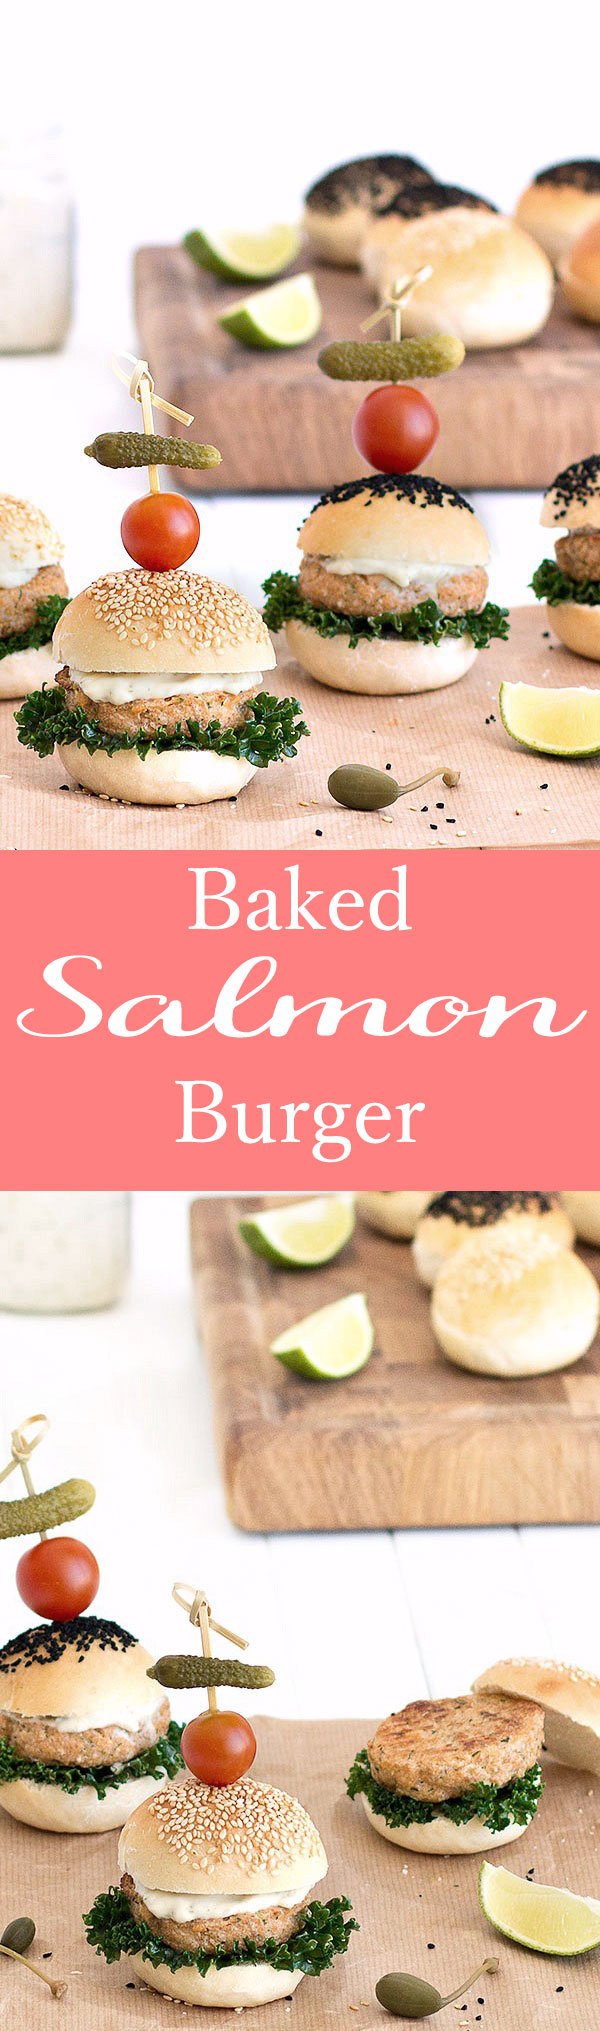 Baked salmon burgers are healthy, tasty, and very filling. They are very simple and quick to make, in 25 minutes your dinner is ready!